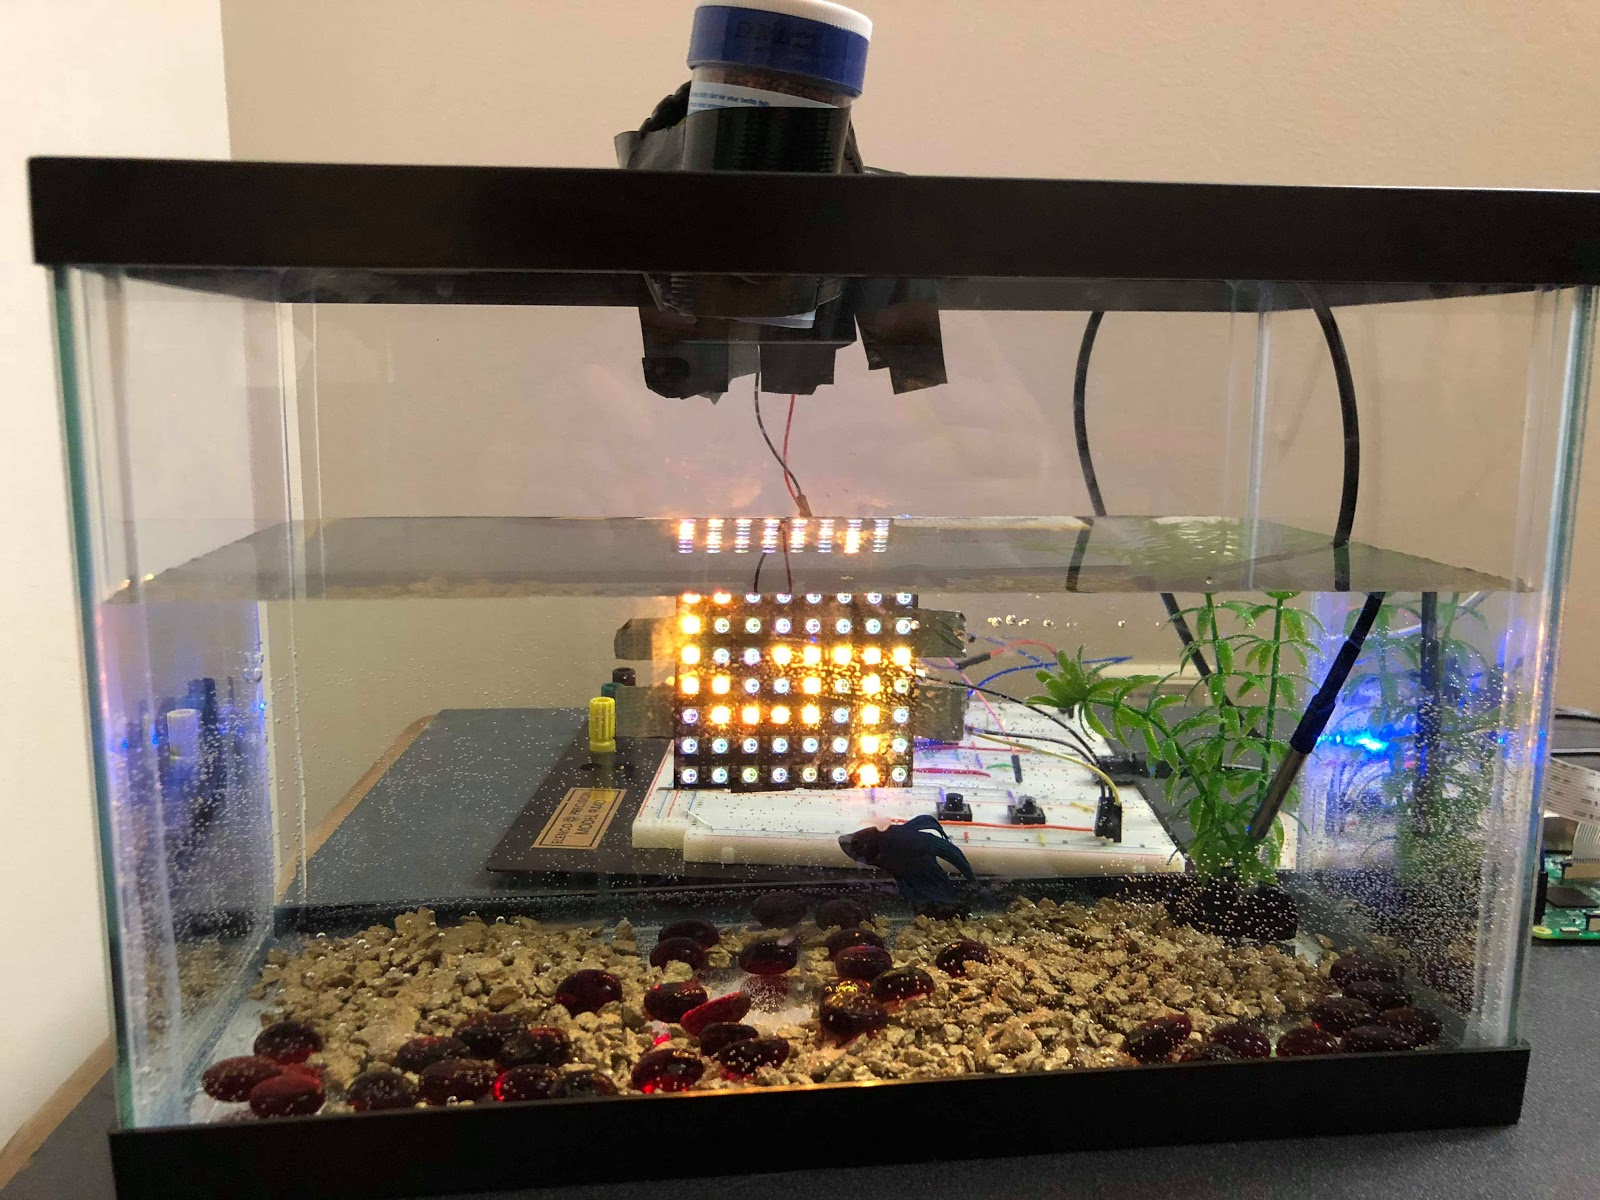 smart aquarium mbed